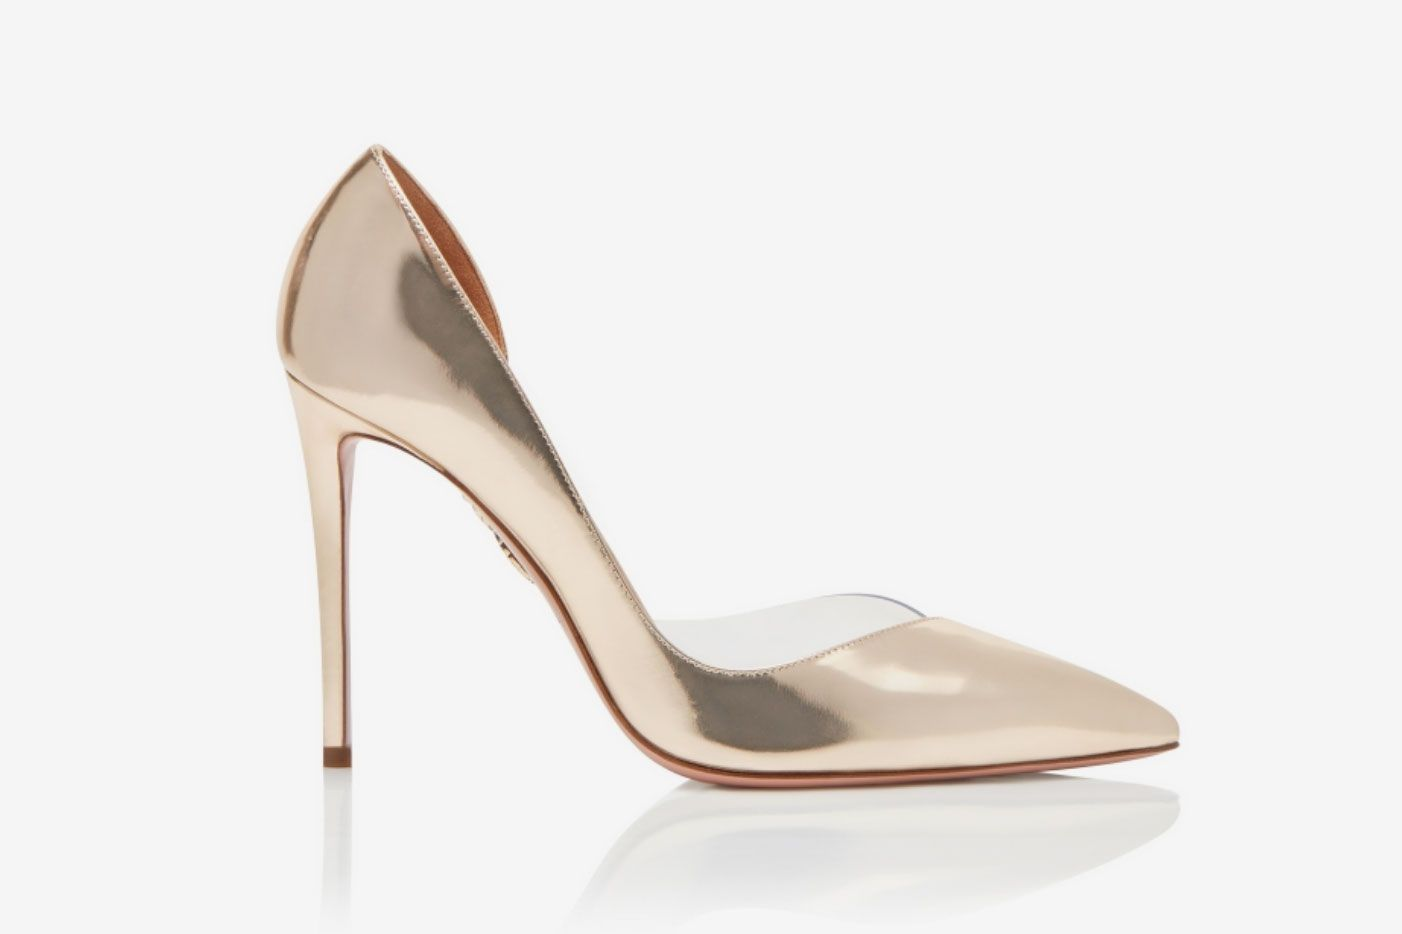 Aquazzura Eclipse pumps